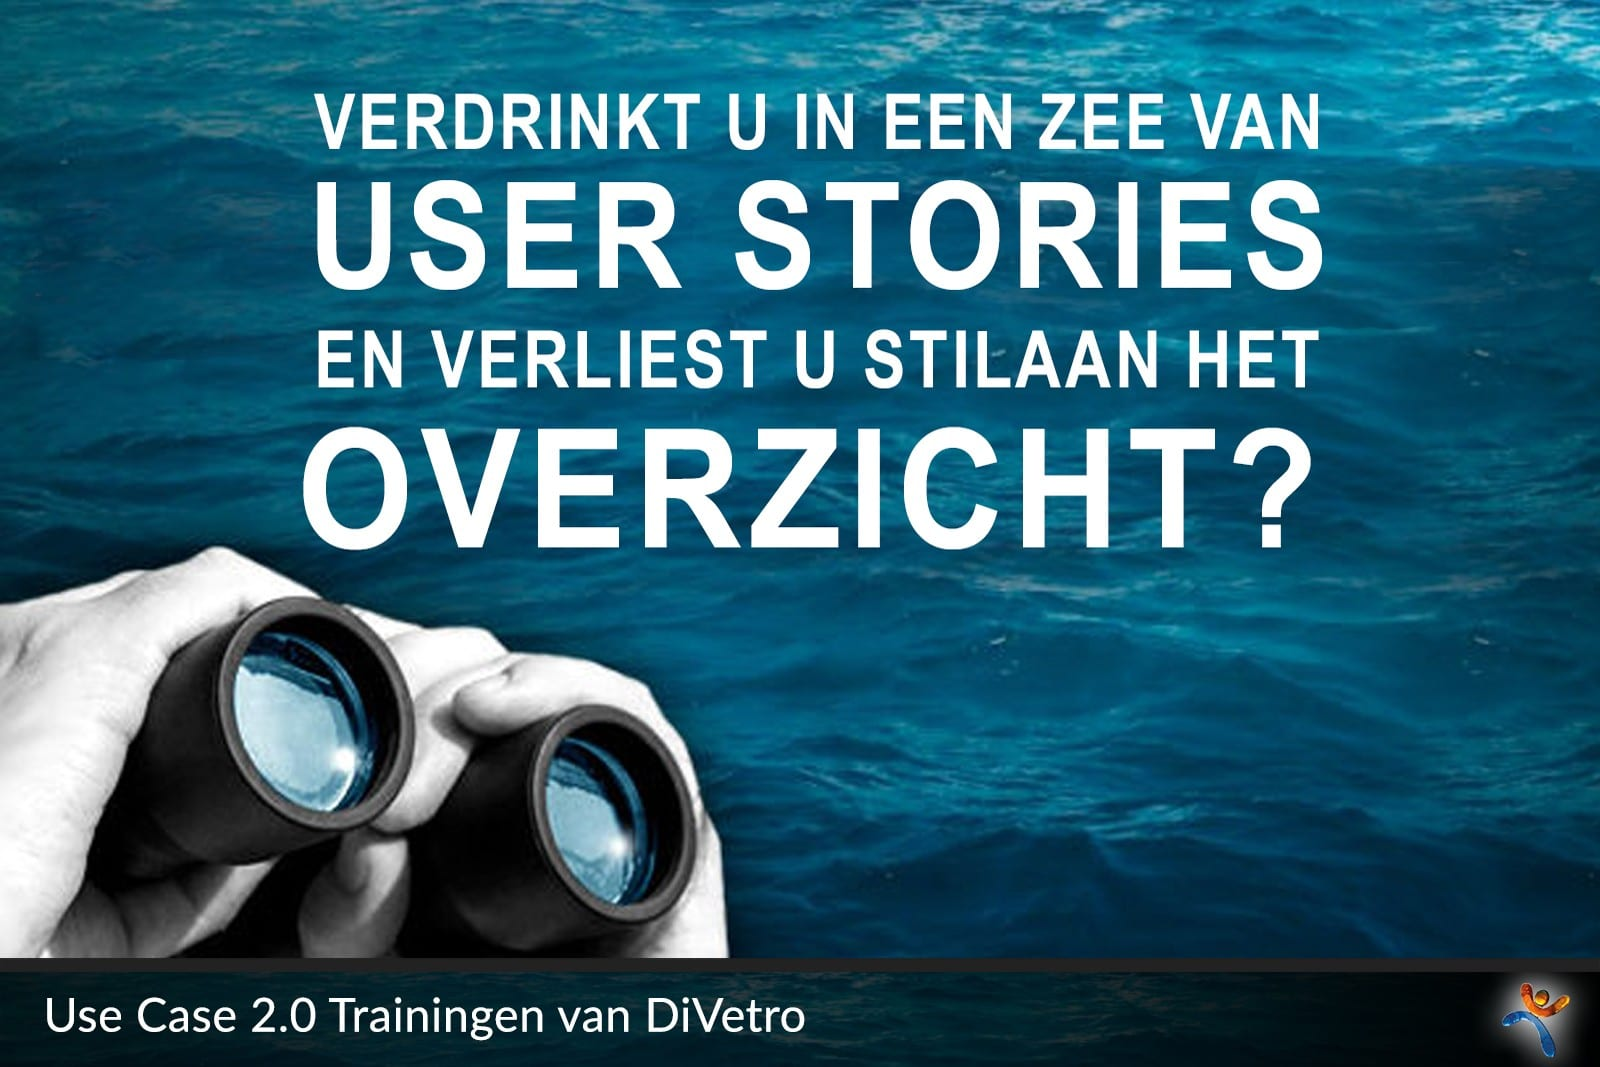 Use Case 2.0 Trainingen van DiVetro en Ivar Jacobson International